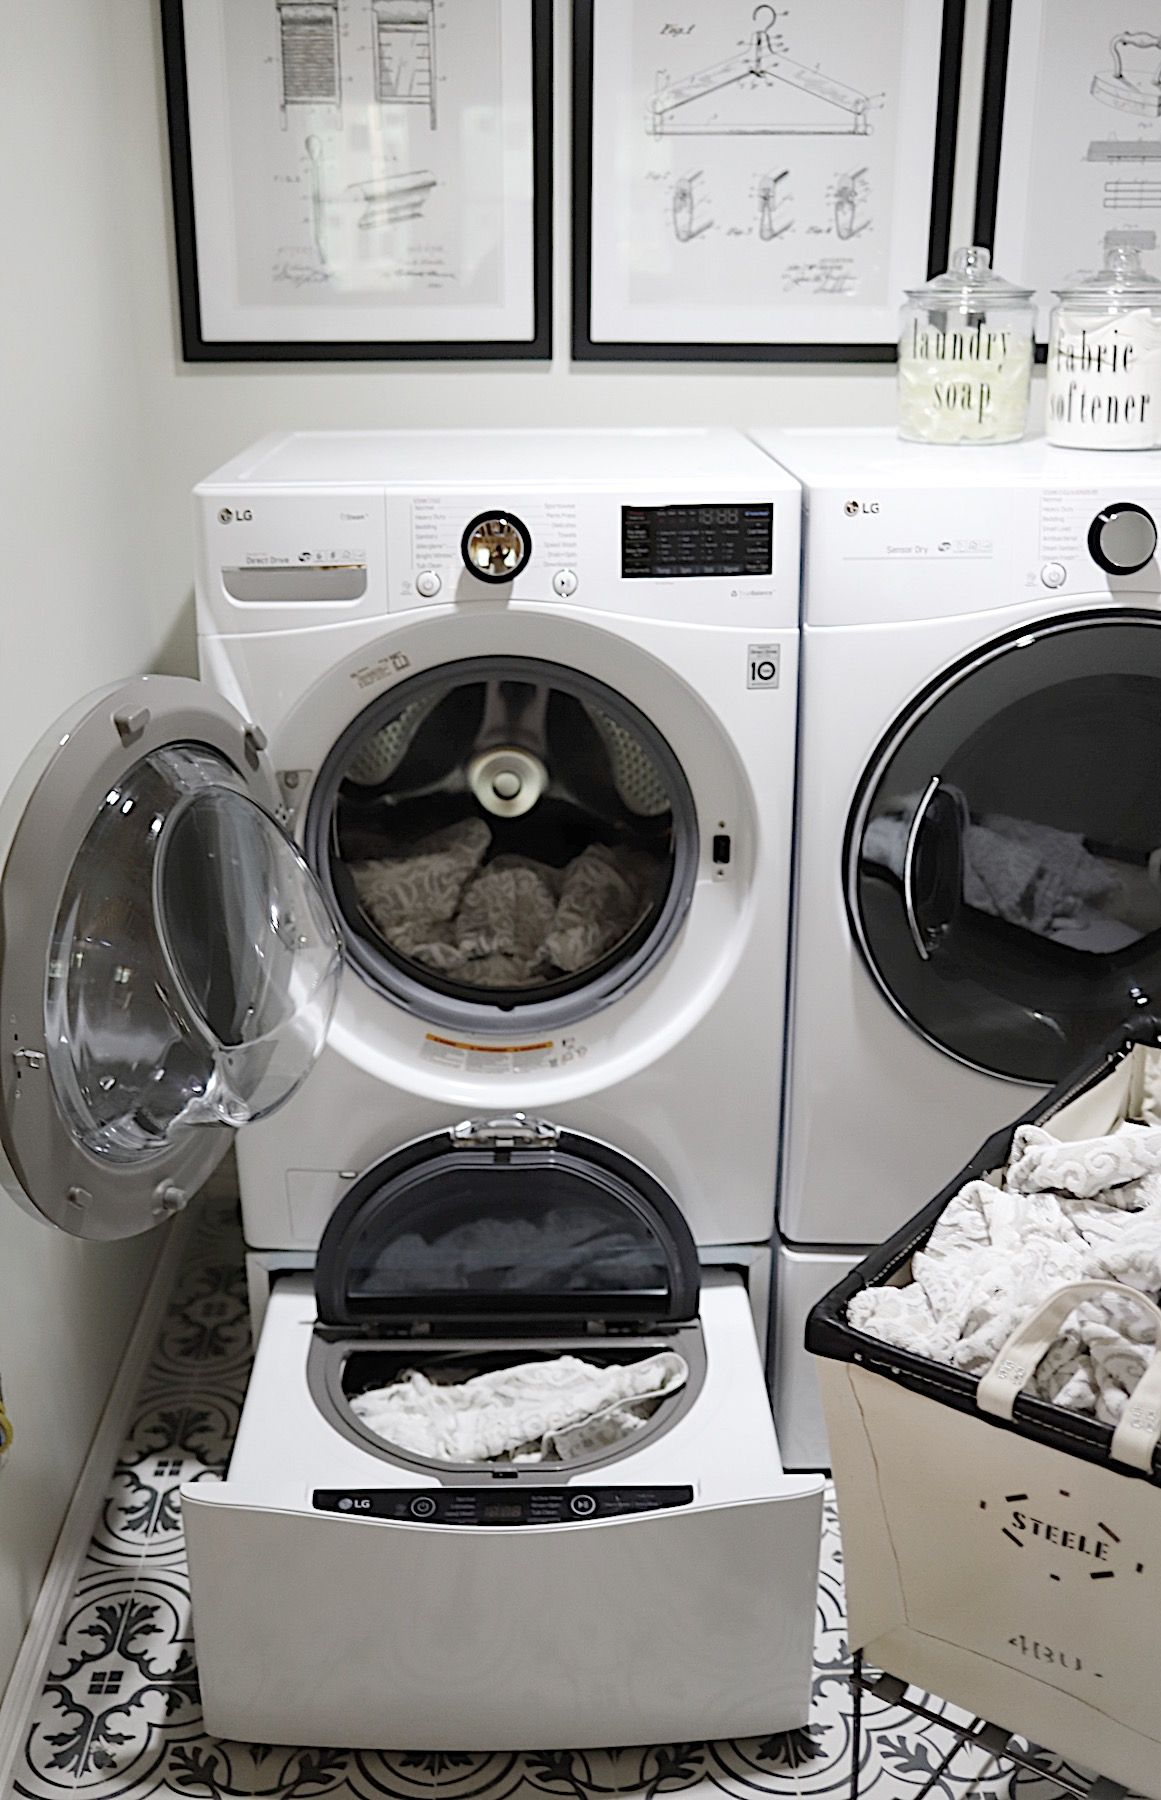 How A Washer And Dryer Can Simplify Your Life My 100 Year Old Home Lg Washer And Dryer Washer And Dryer Laundry Room Storage